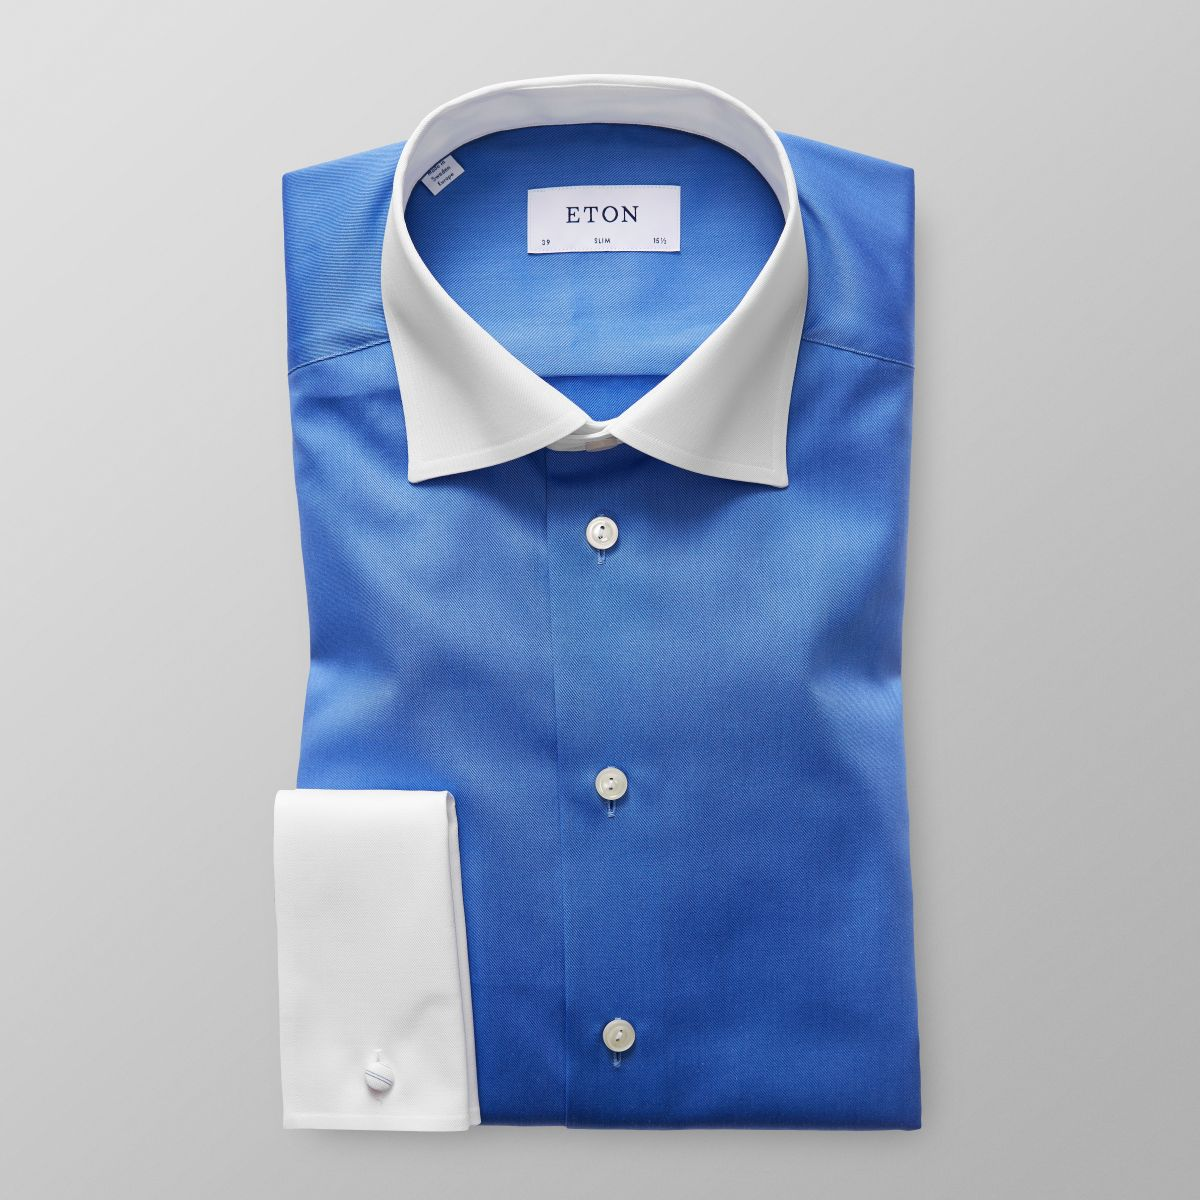 Blue Contrast Collar Shirt Slim Eton Shirts Us